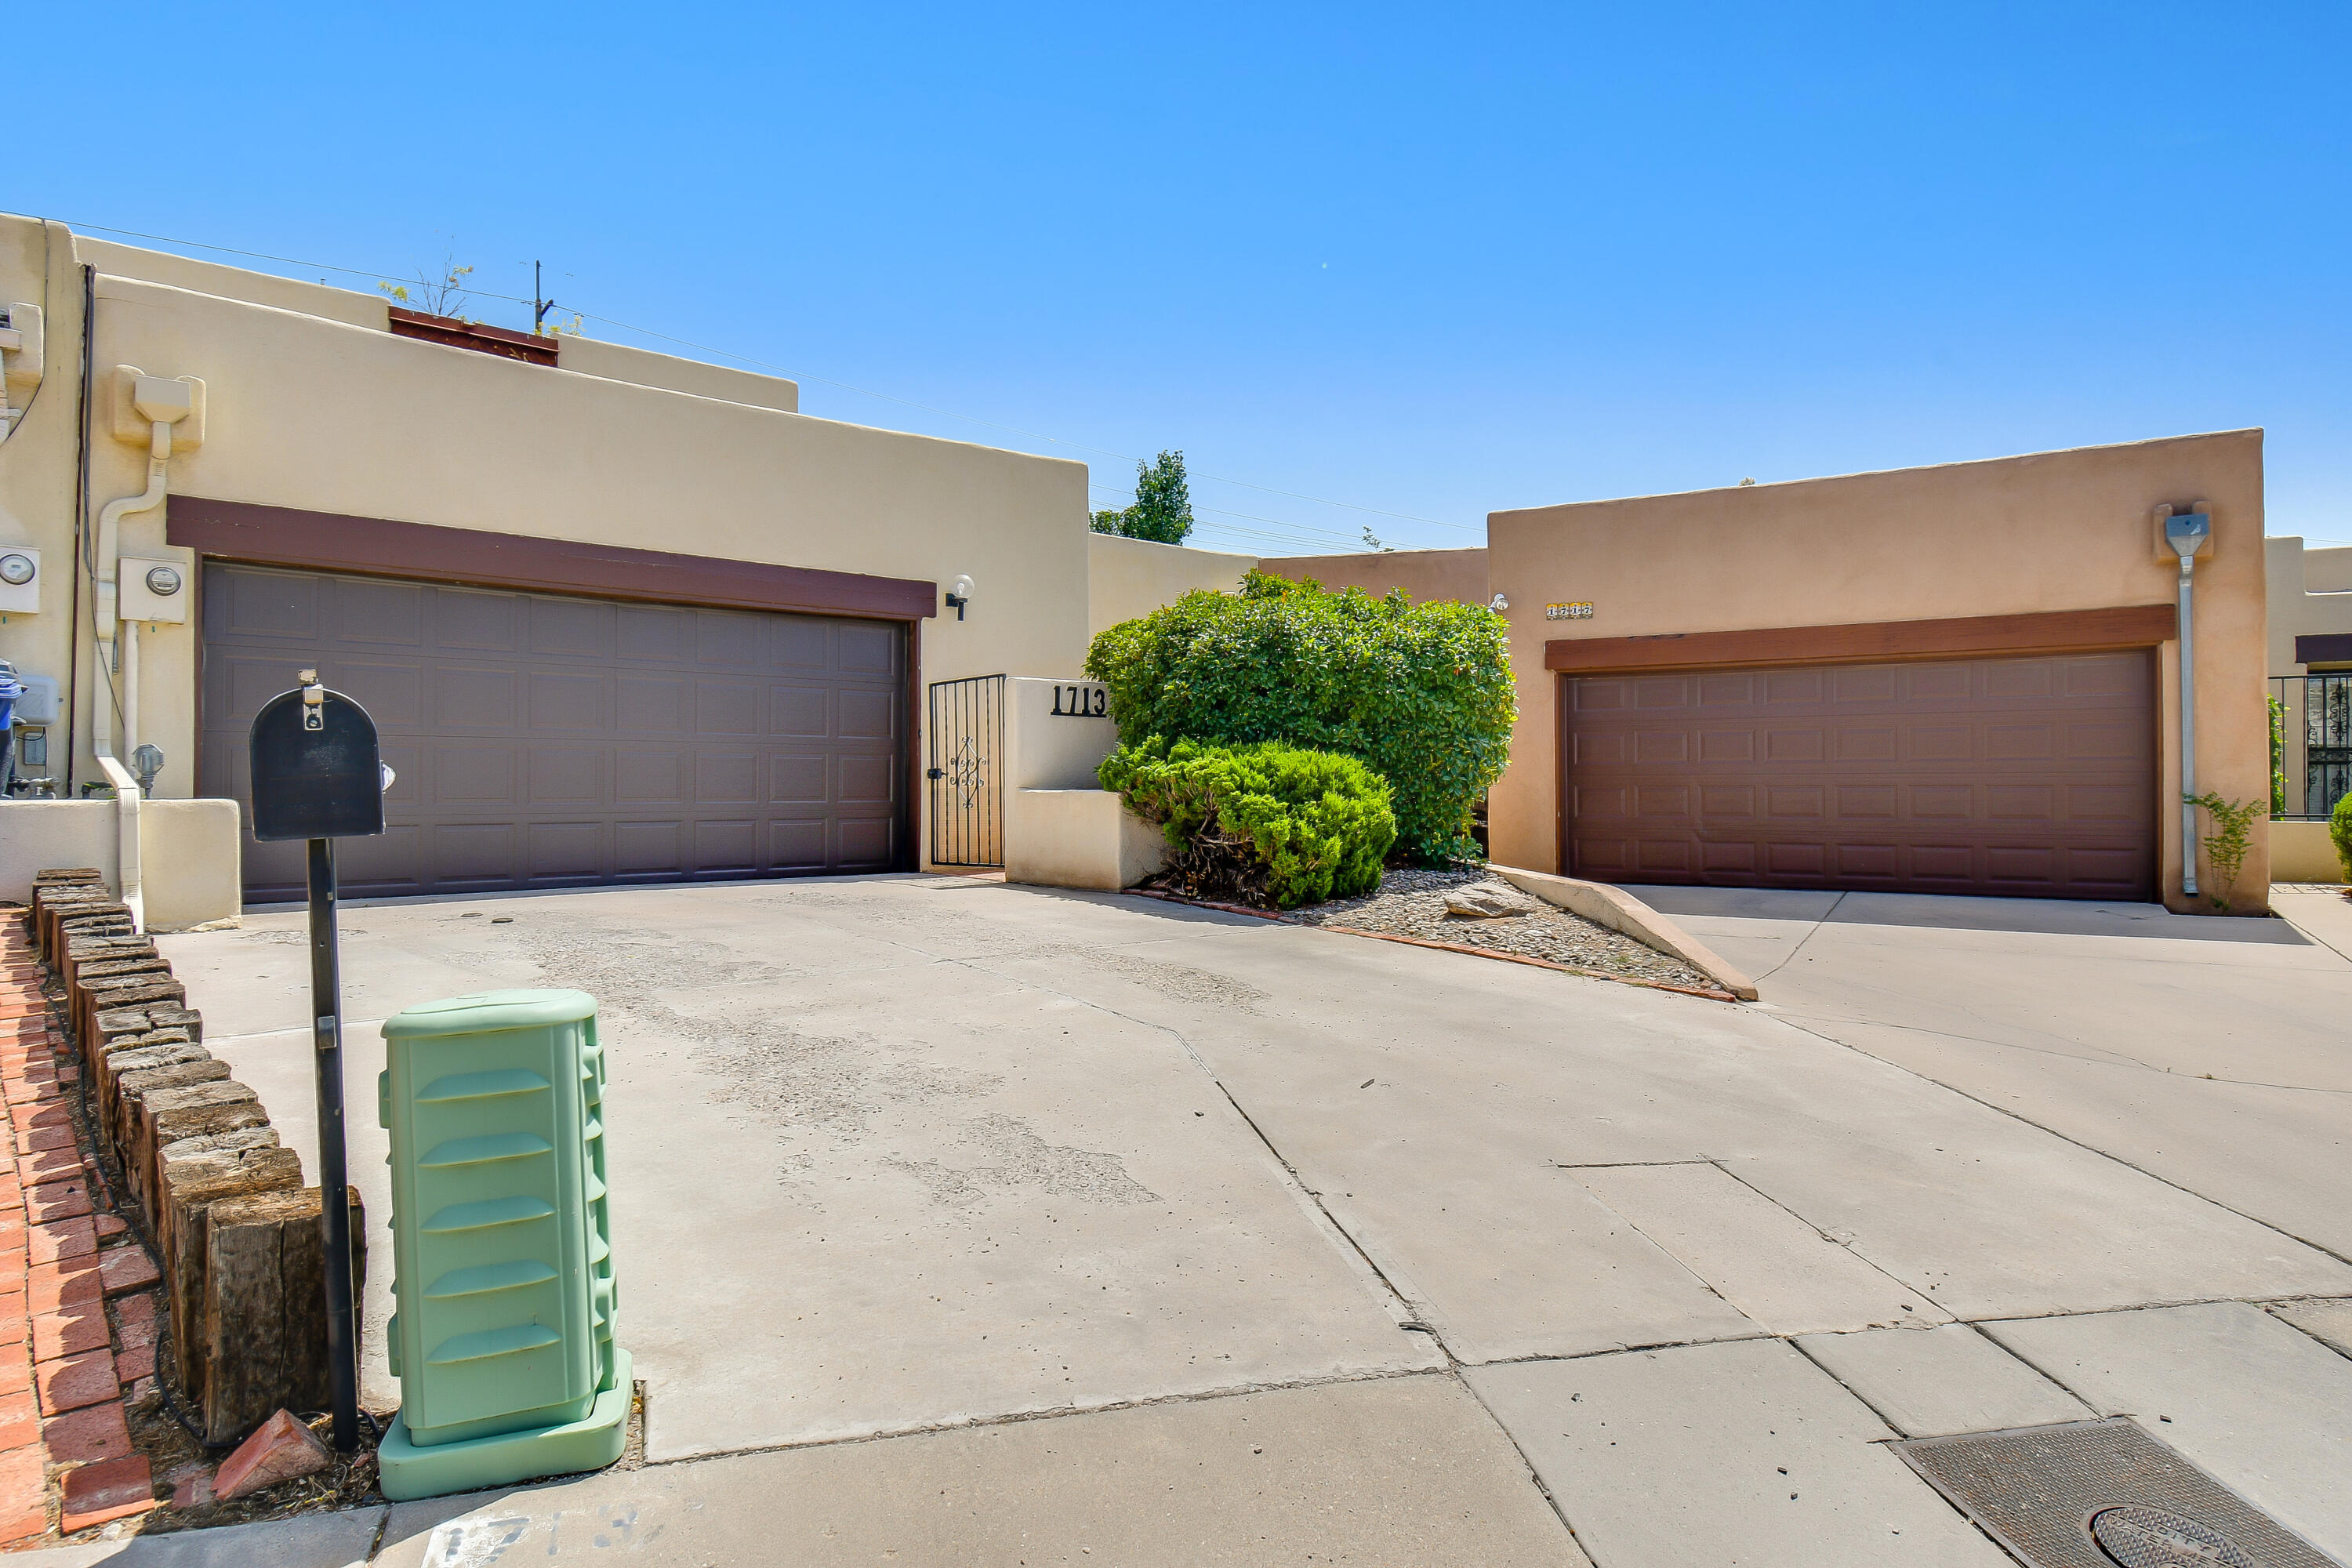 Come see this beautiful Townhome located in the highly sought after UNM area.  This home has a great open floor plan. Large walk in closets. Bonus/Workshop area with shelving & sink with running water in Garage. Great views from upstairs Deck. Low maintenance landscaping with a lovely covered patio in the back. Convenient location is close to I-40, shopping and restaurants. Schedule your showing today!